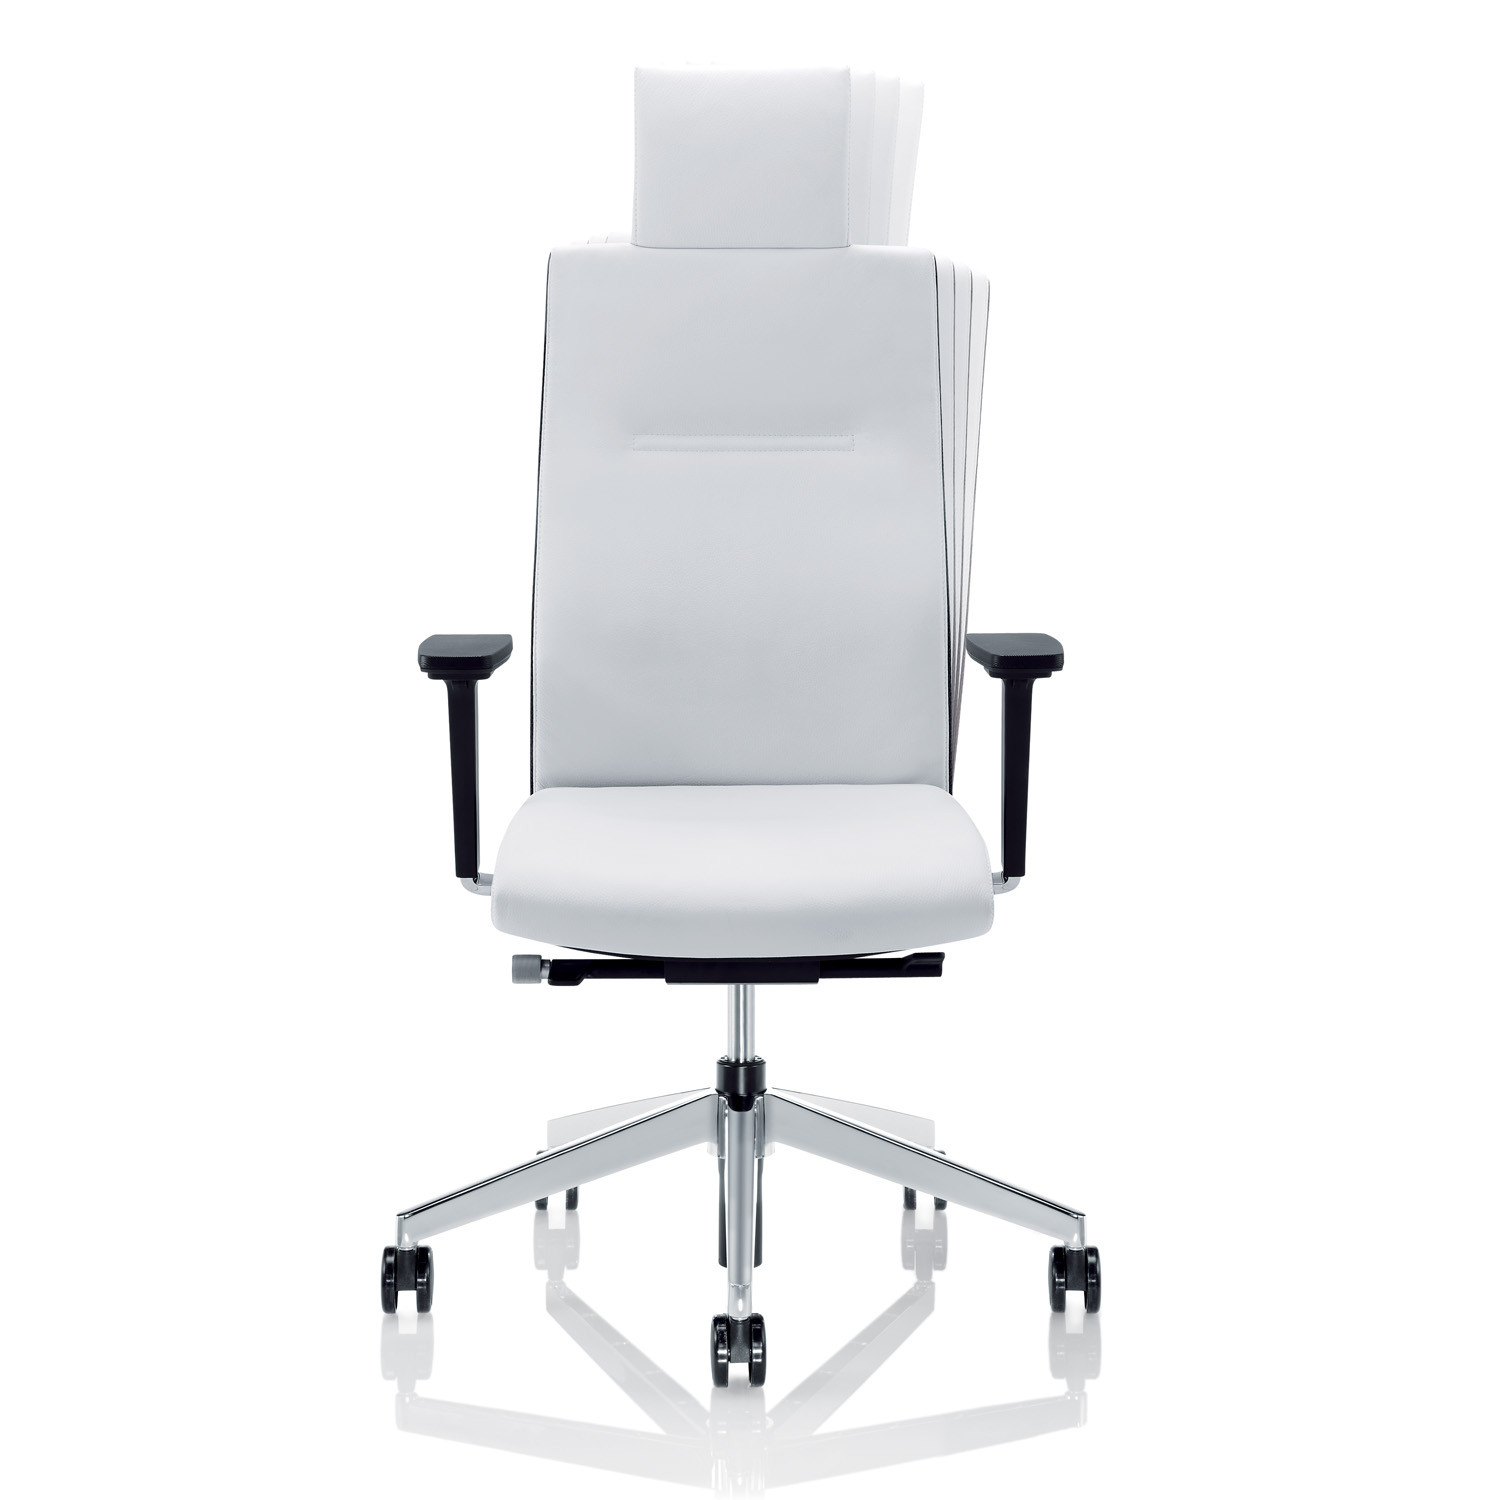 CuboFLEX High Back Office Chair